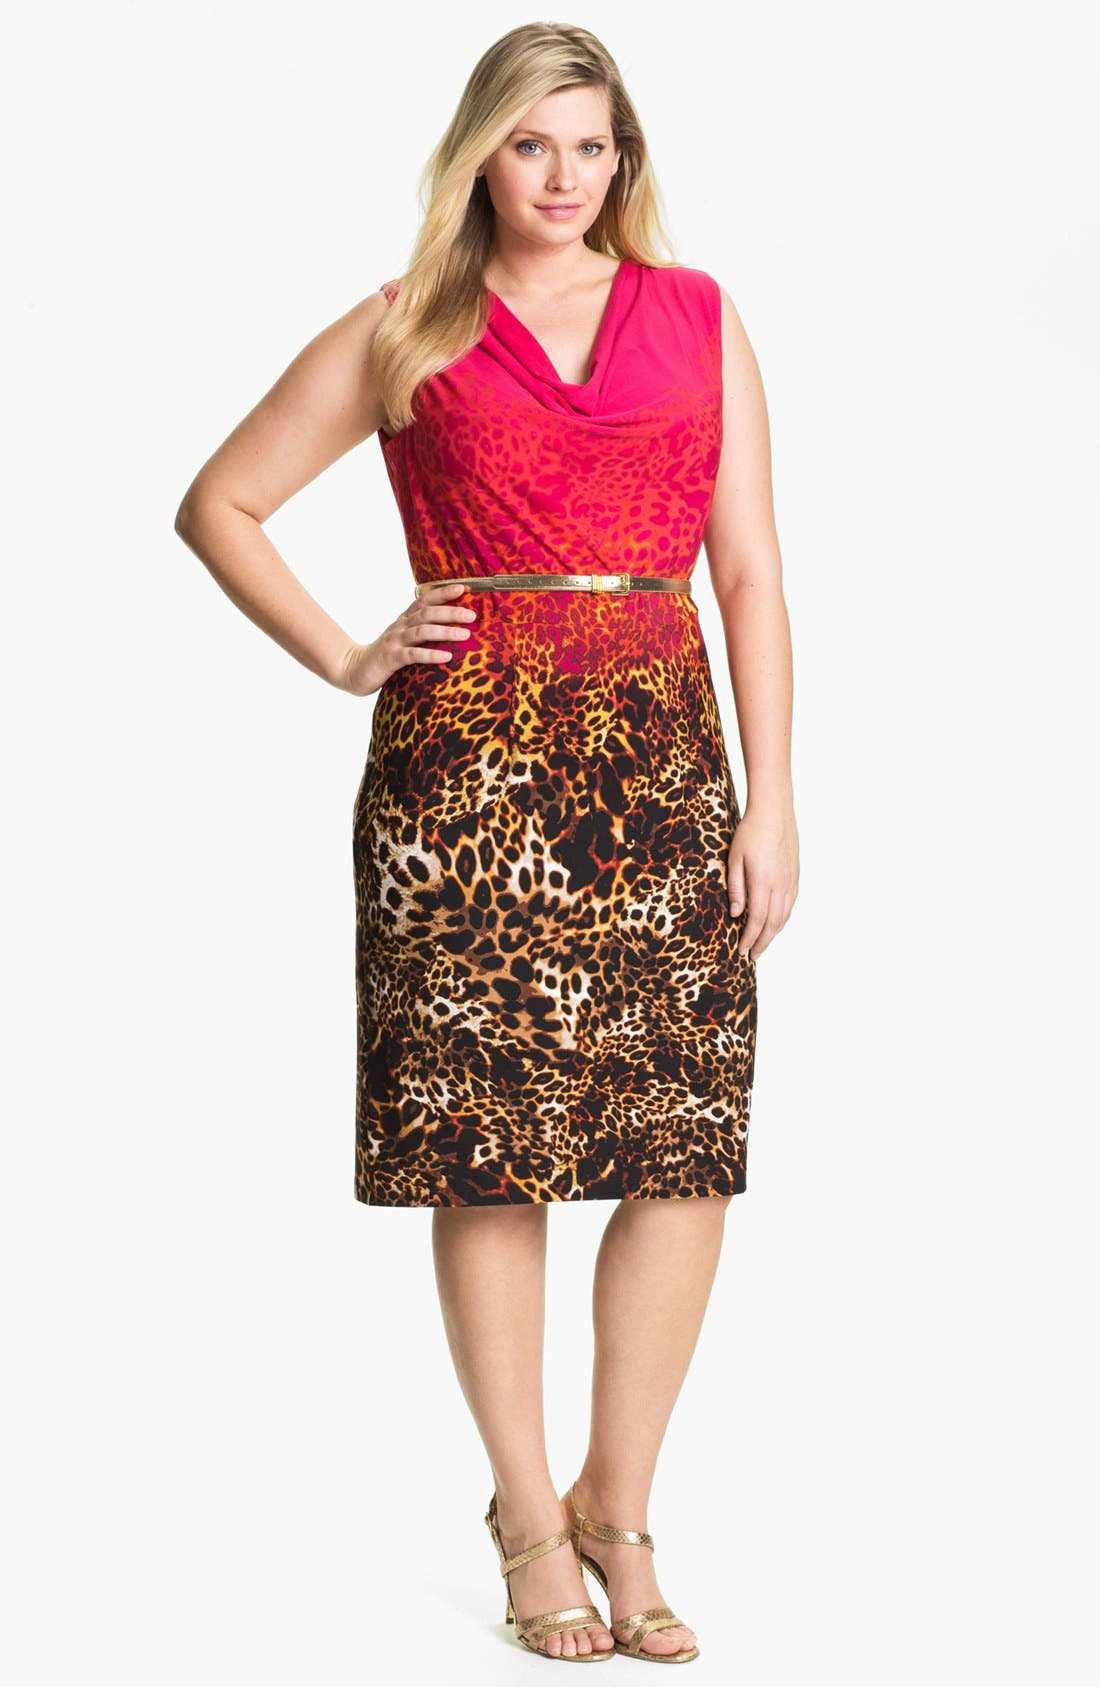 Alternate Image 1 Selected - Calvin Klein Cowl Neck Print Sheath Dress (Plus Size)